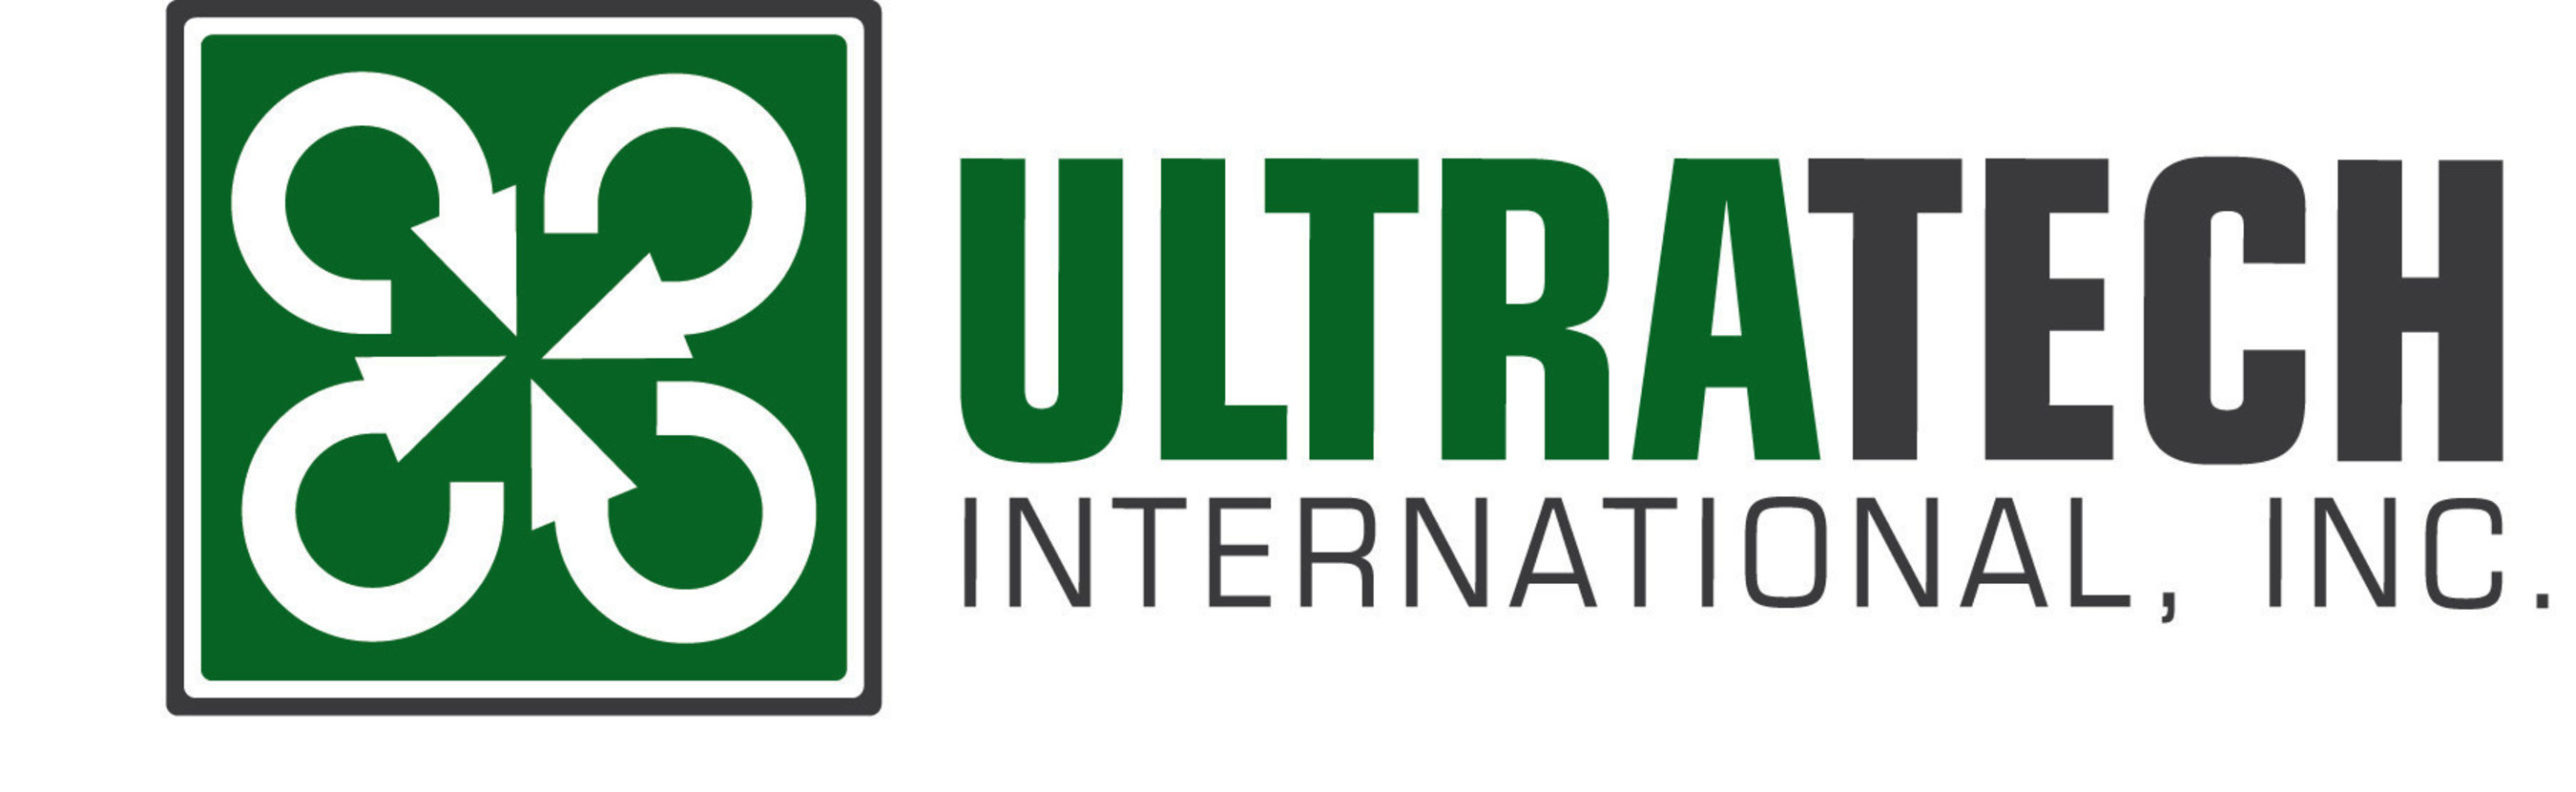 Deal of Distinction Award given to UltraTech International, Inc. and Kimberly-Clark Corp.